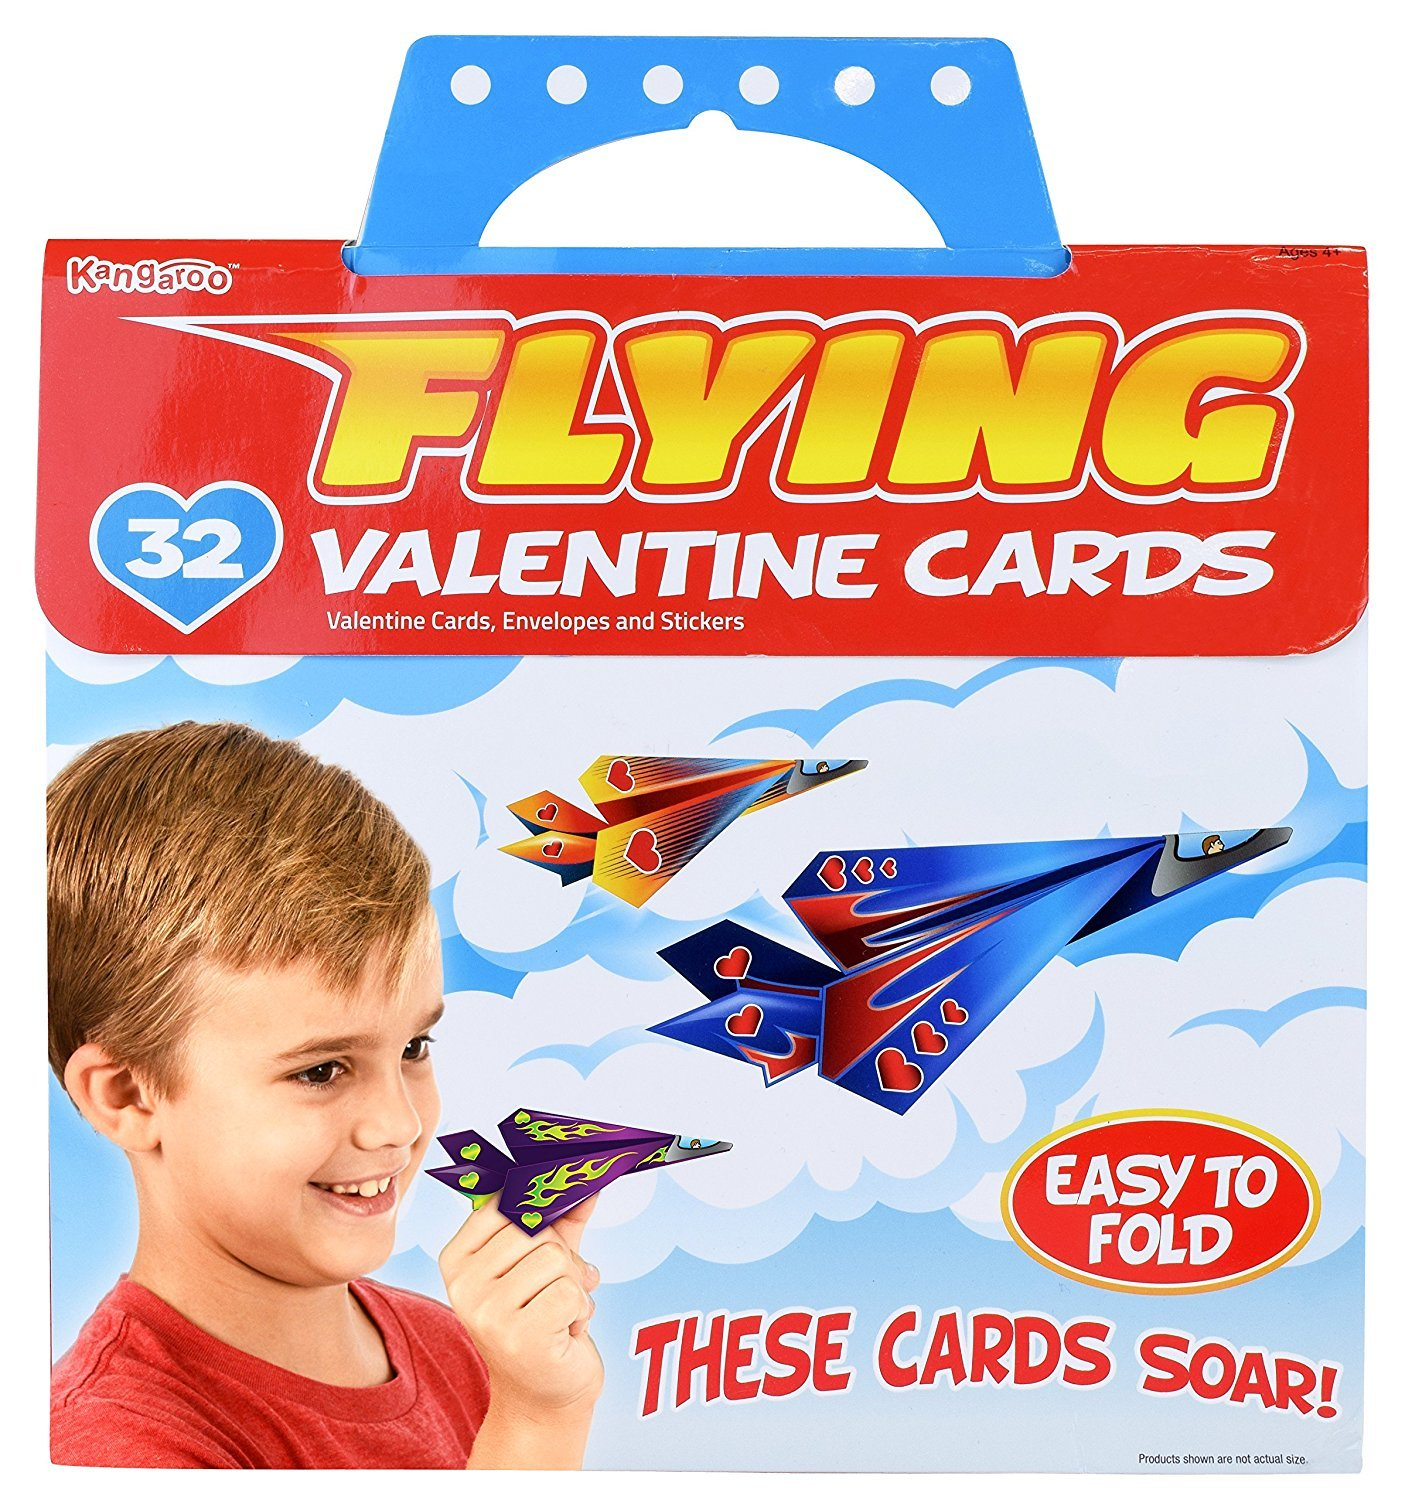 Kangaroo's Flying Paper Airplanes; (32-Count) Valentine's Day Cards For Kids Kangaroo Manufacturing 4336865244